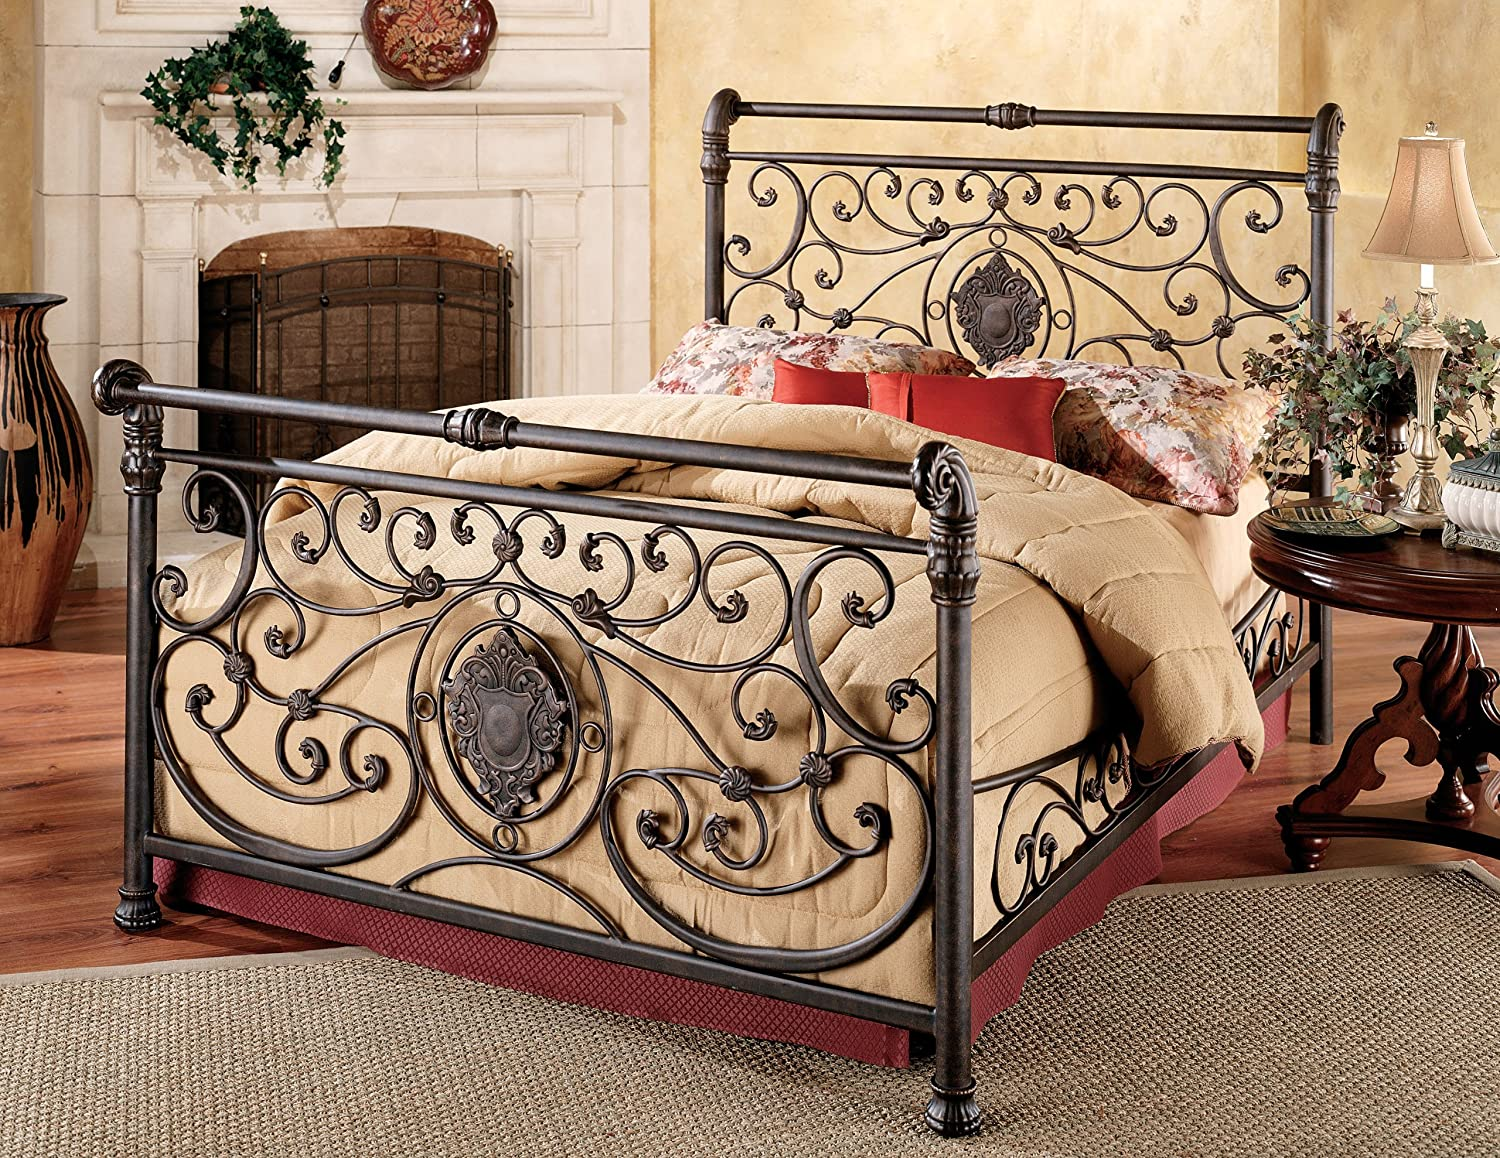 Amazon.com: Hillsdale Furniture 1039BKR Mercer Bed Set with Rails ...